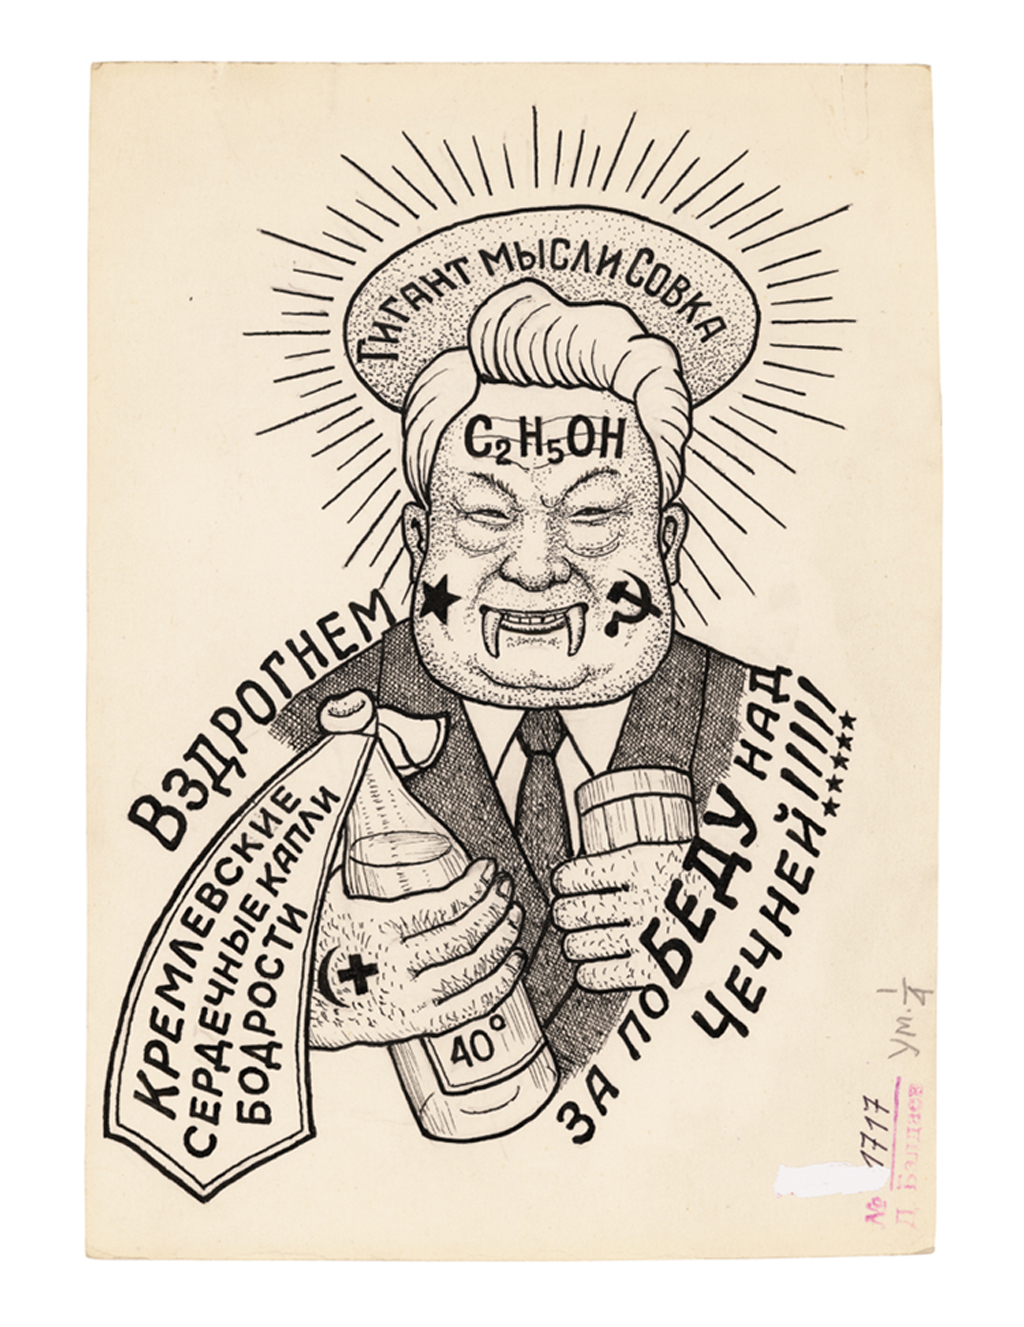 From the top the text reads 'Giant of Soviet thought, C2H5OH [the molecular formula for alcohol]. Down the hatch, Cheering Kremlin Heart Drops, For victory over Chechnya!!!!!'. A caricature known as 'Japanese eyes'. The wearer fought in the Chechen war of 1994-1996.